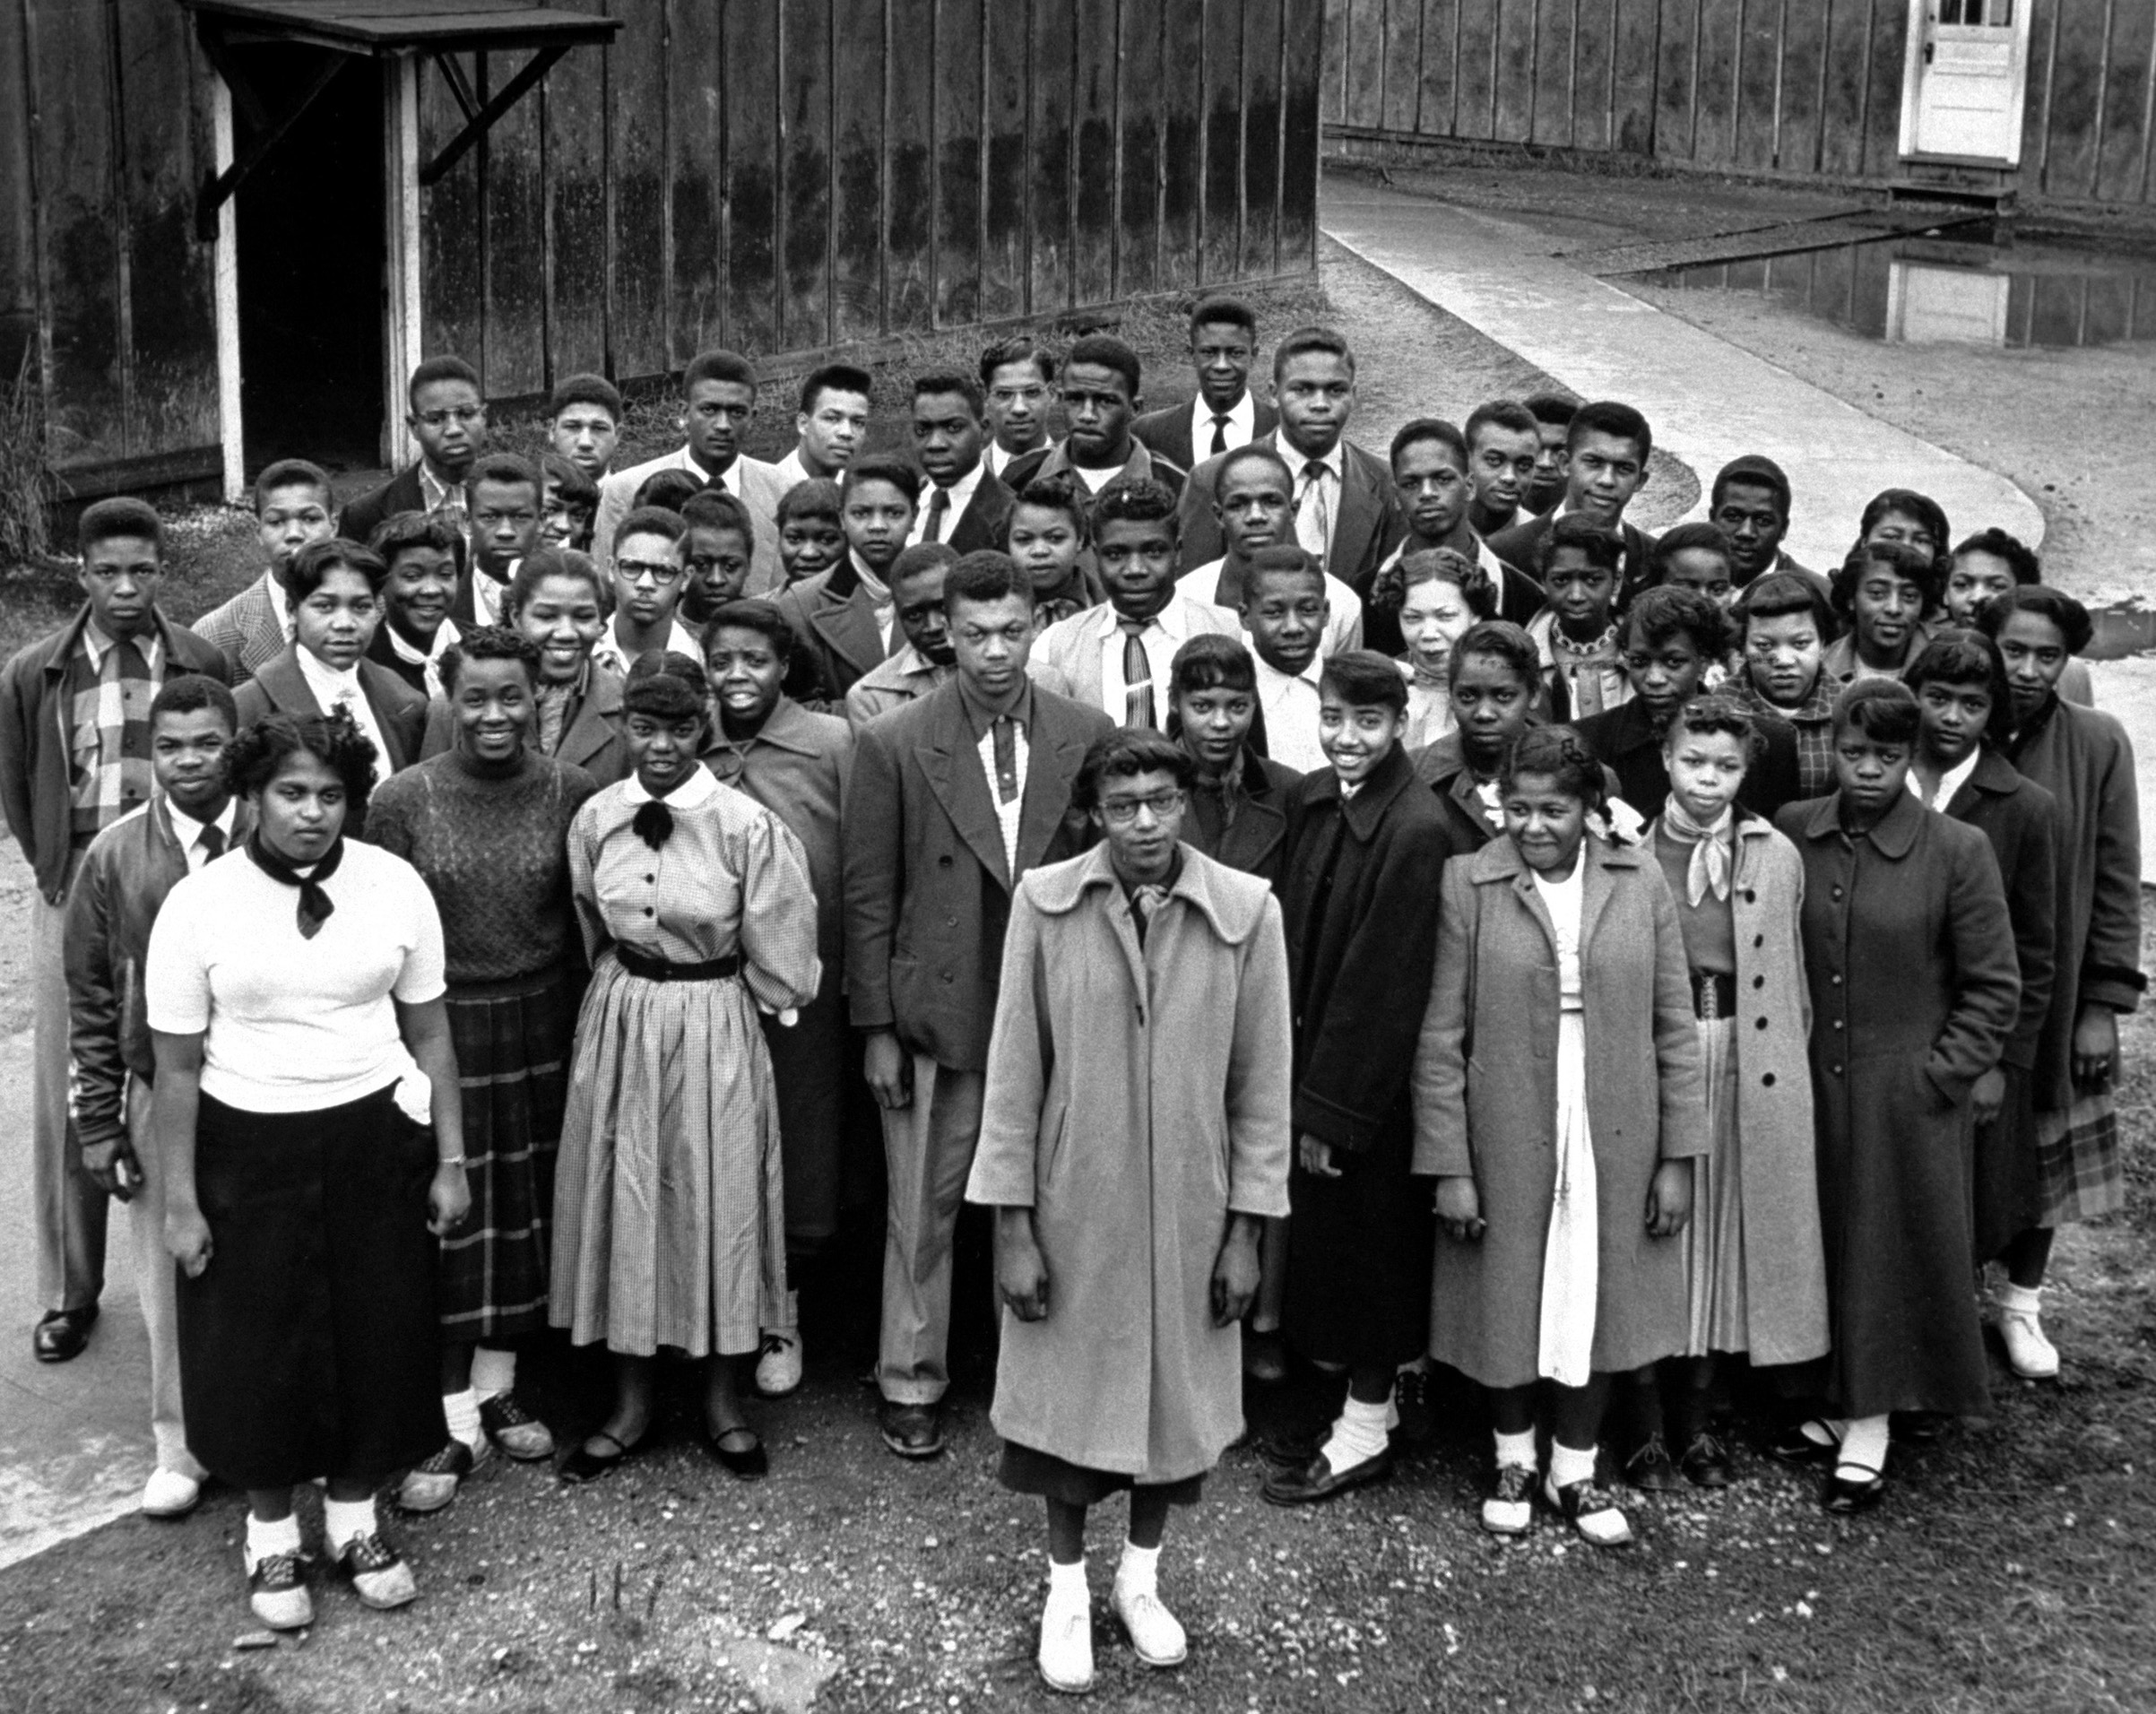 Group portrait of some of the more than 100 students named in the lawsuit filed to seek, initially, repairs for Robert Moton High School, a segregated school in Farmville, Va., March 1953.